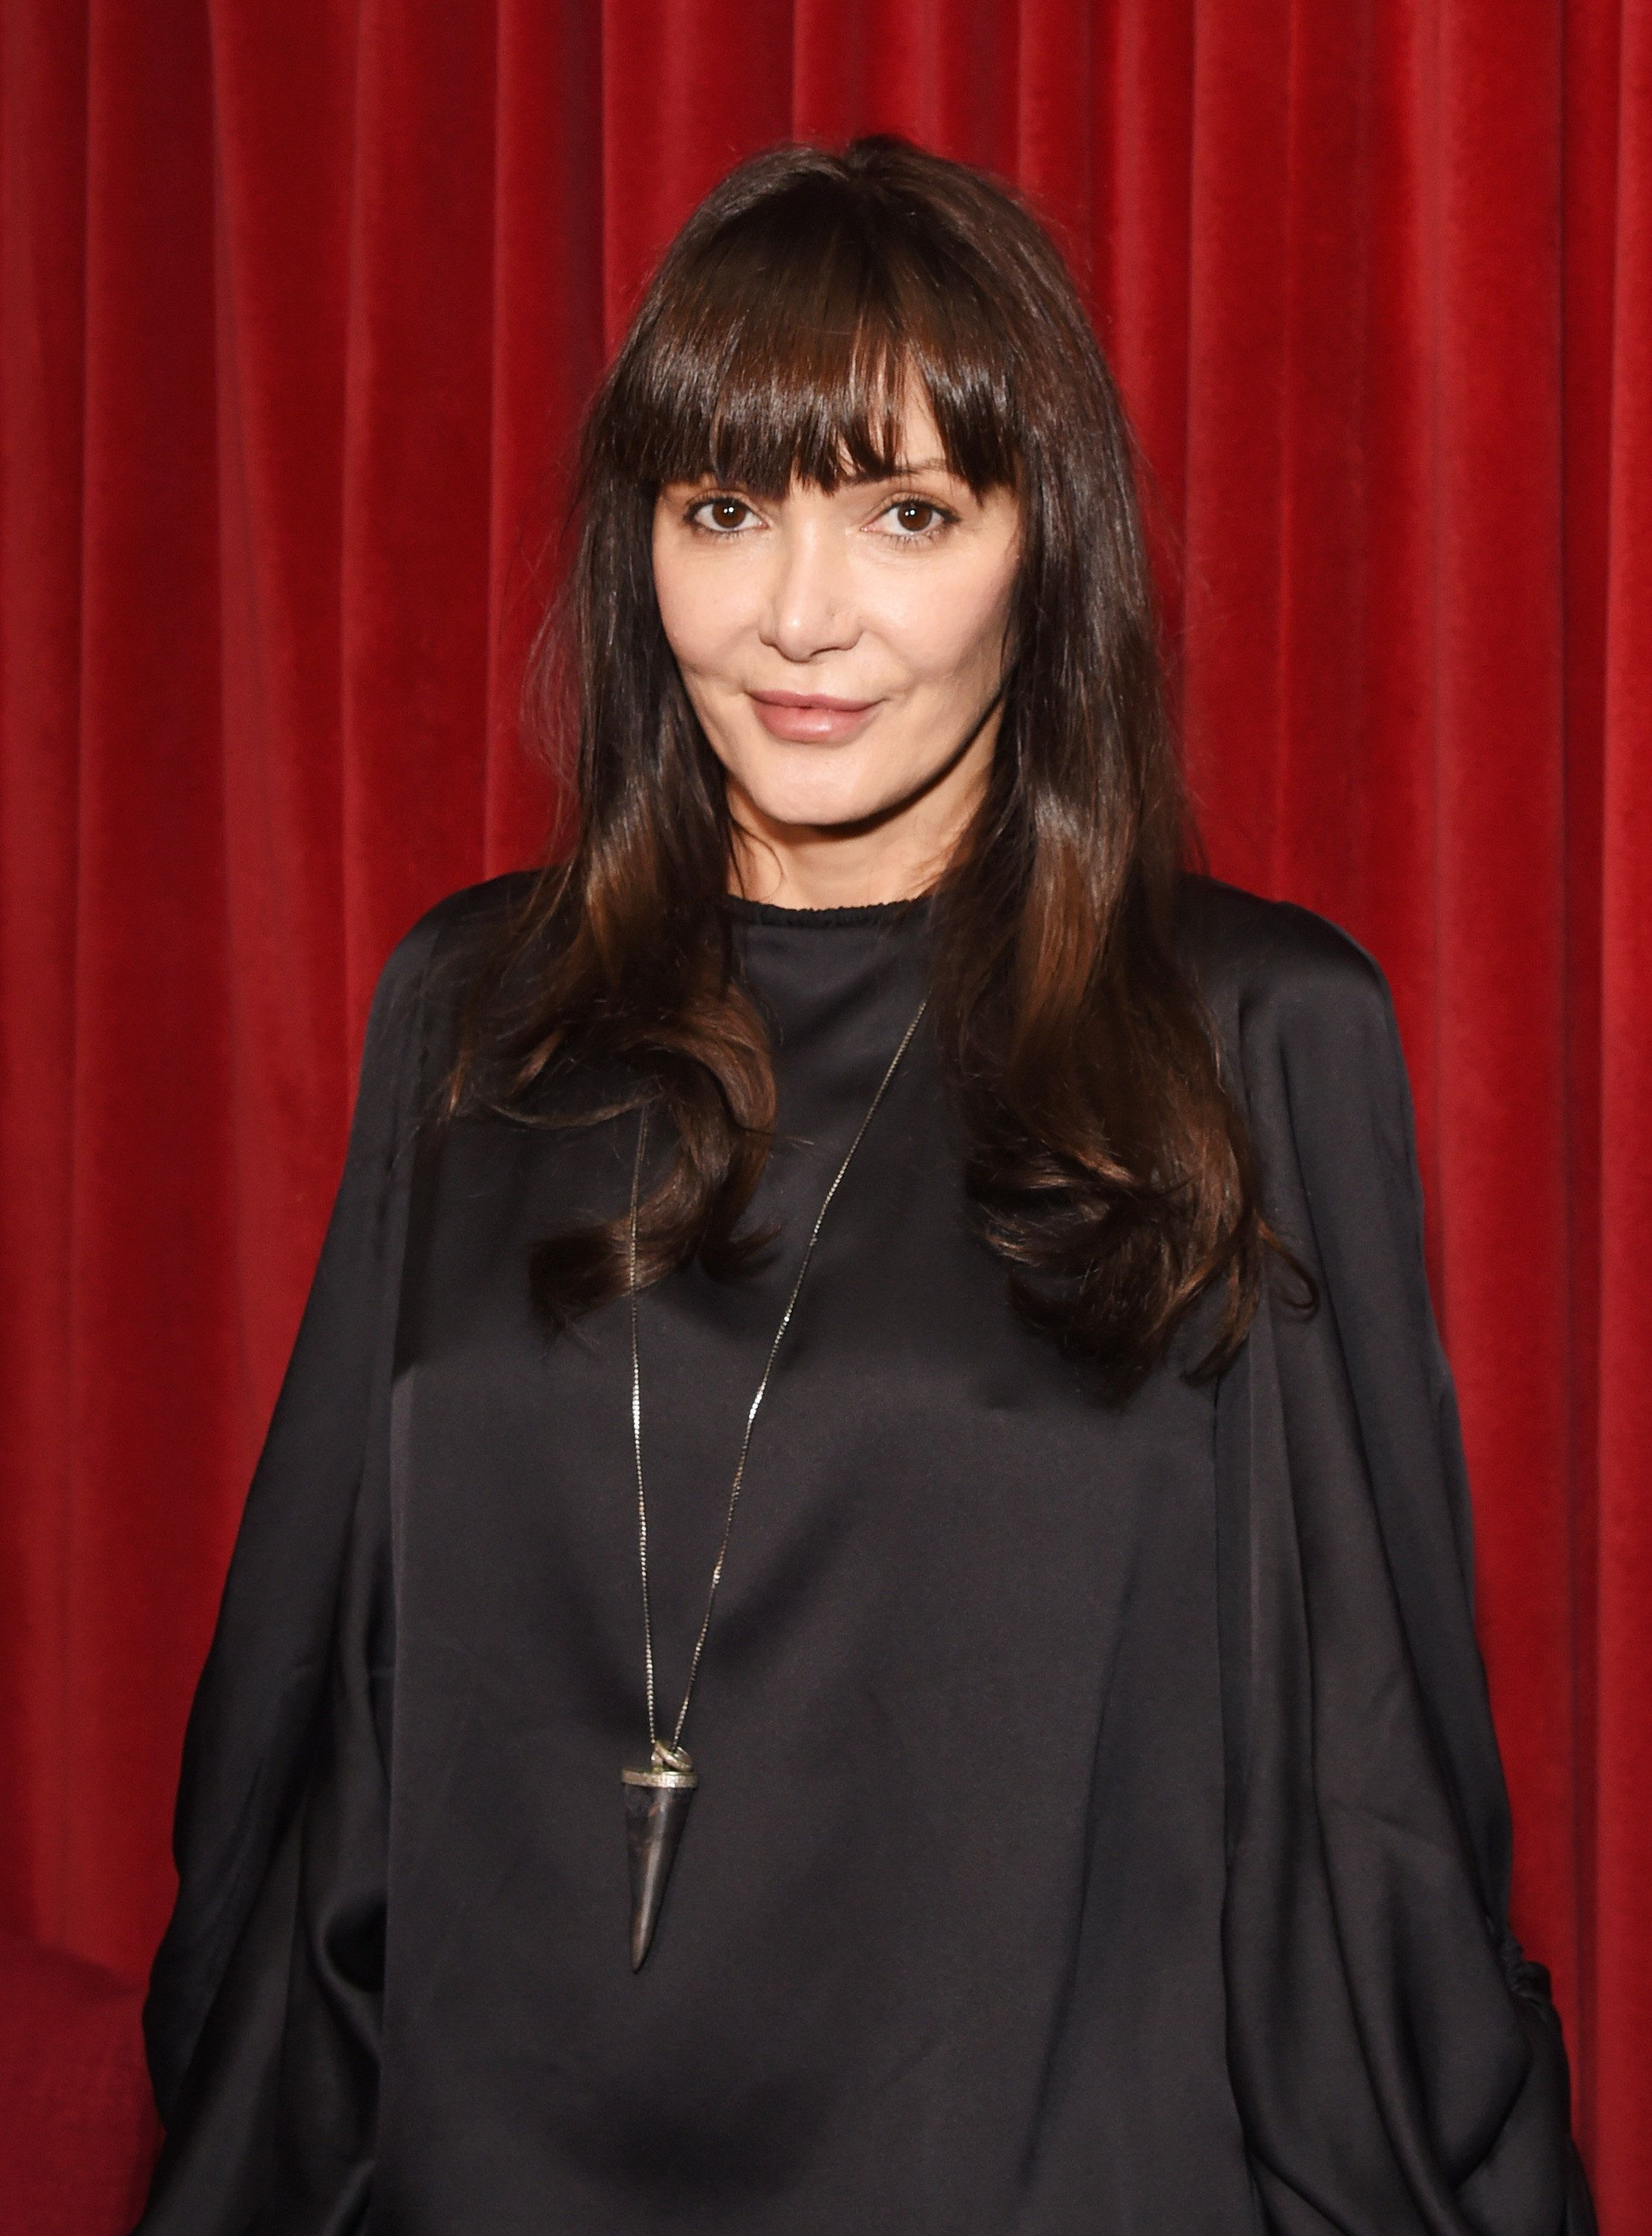 LONDON, ENGLAND - SEPTEMBER 01:  Annabelle Neilson attends the UK Premiere of 'Buttercup Bill' at Curzon Soho on September 1, 2015 in London, England.  (Photo by David M. Benett/Dave Benett/WireImage)